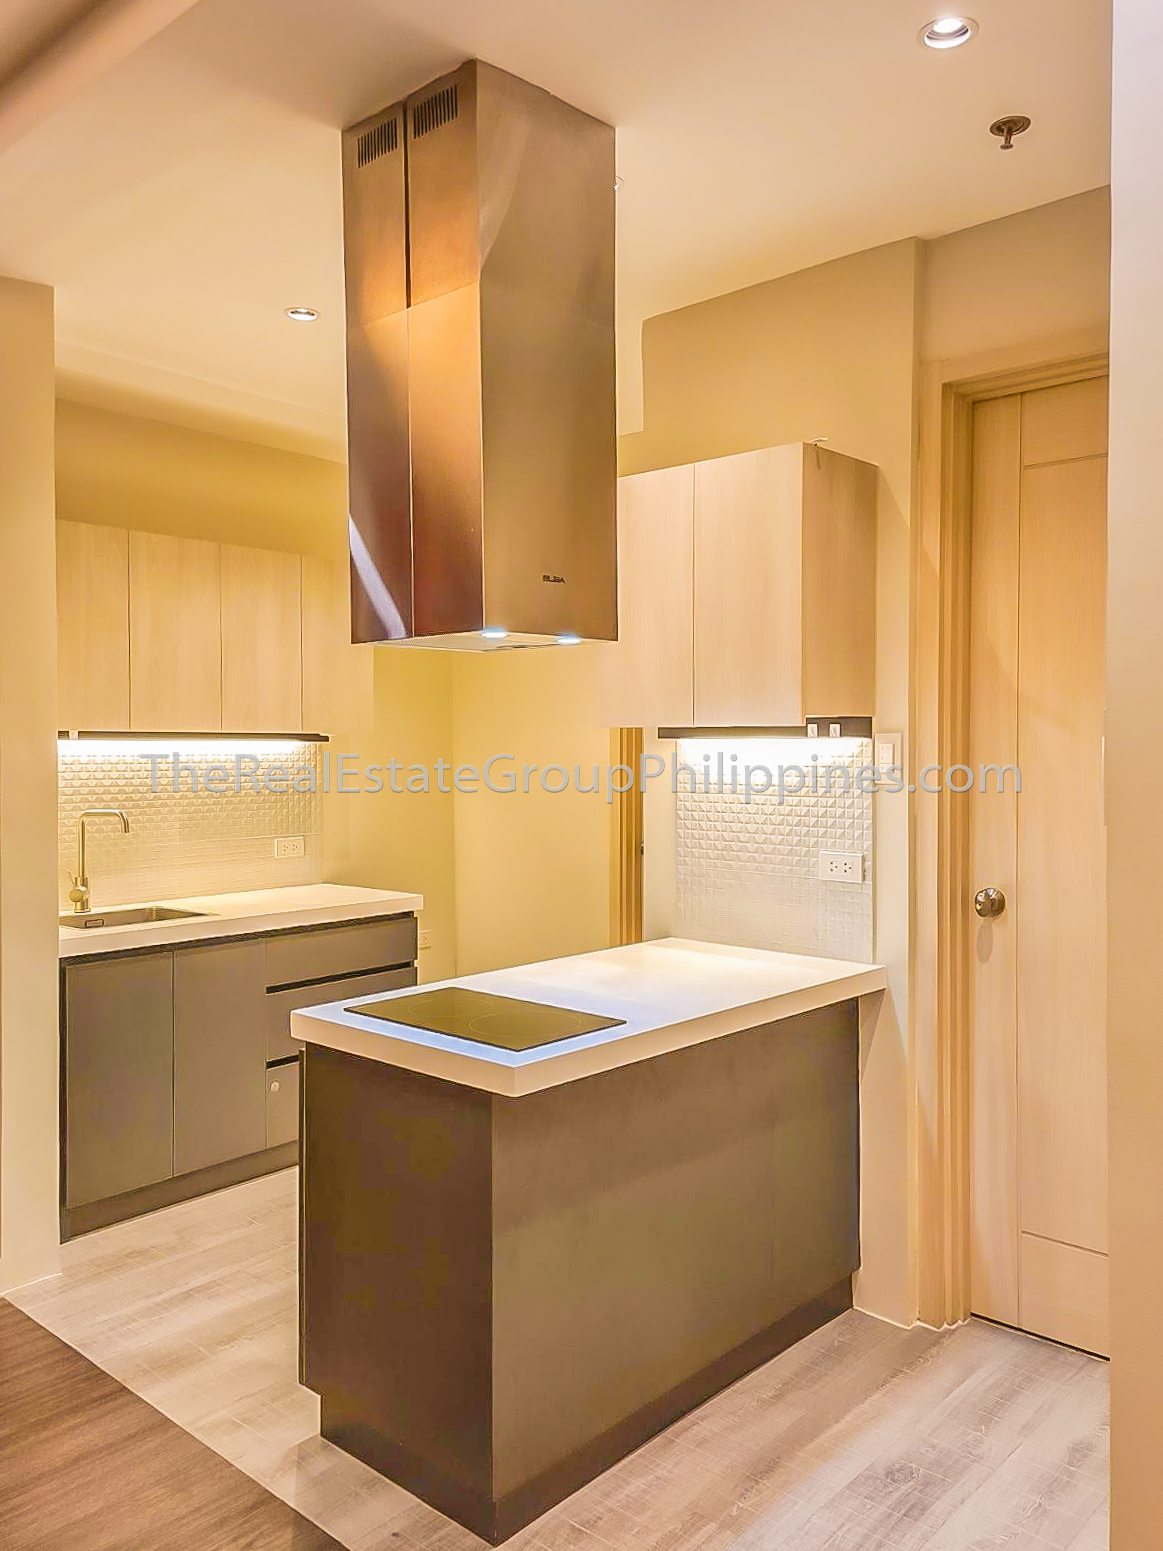 1BR Condo For Rent Lease, Icon Residences, BGC (1 of 7)